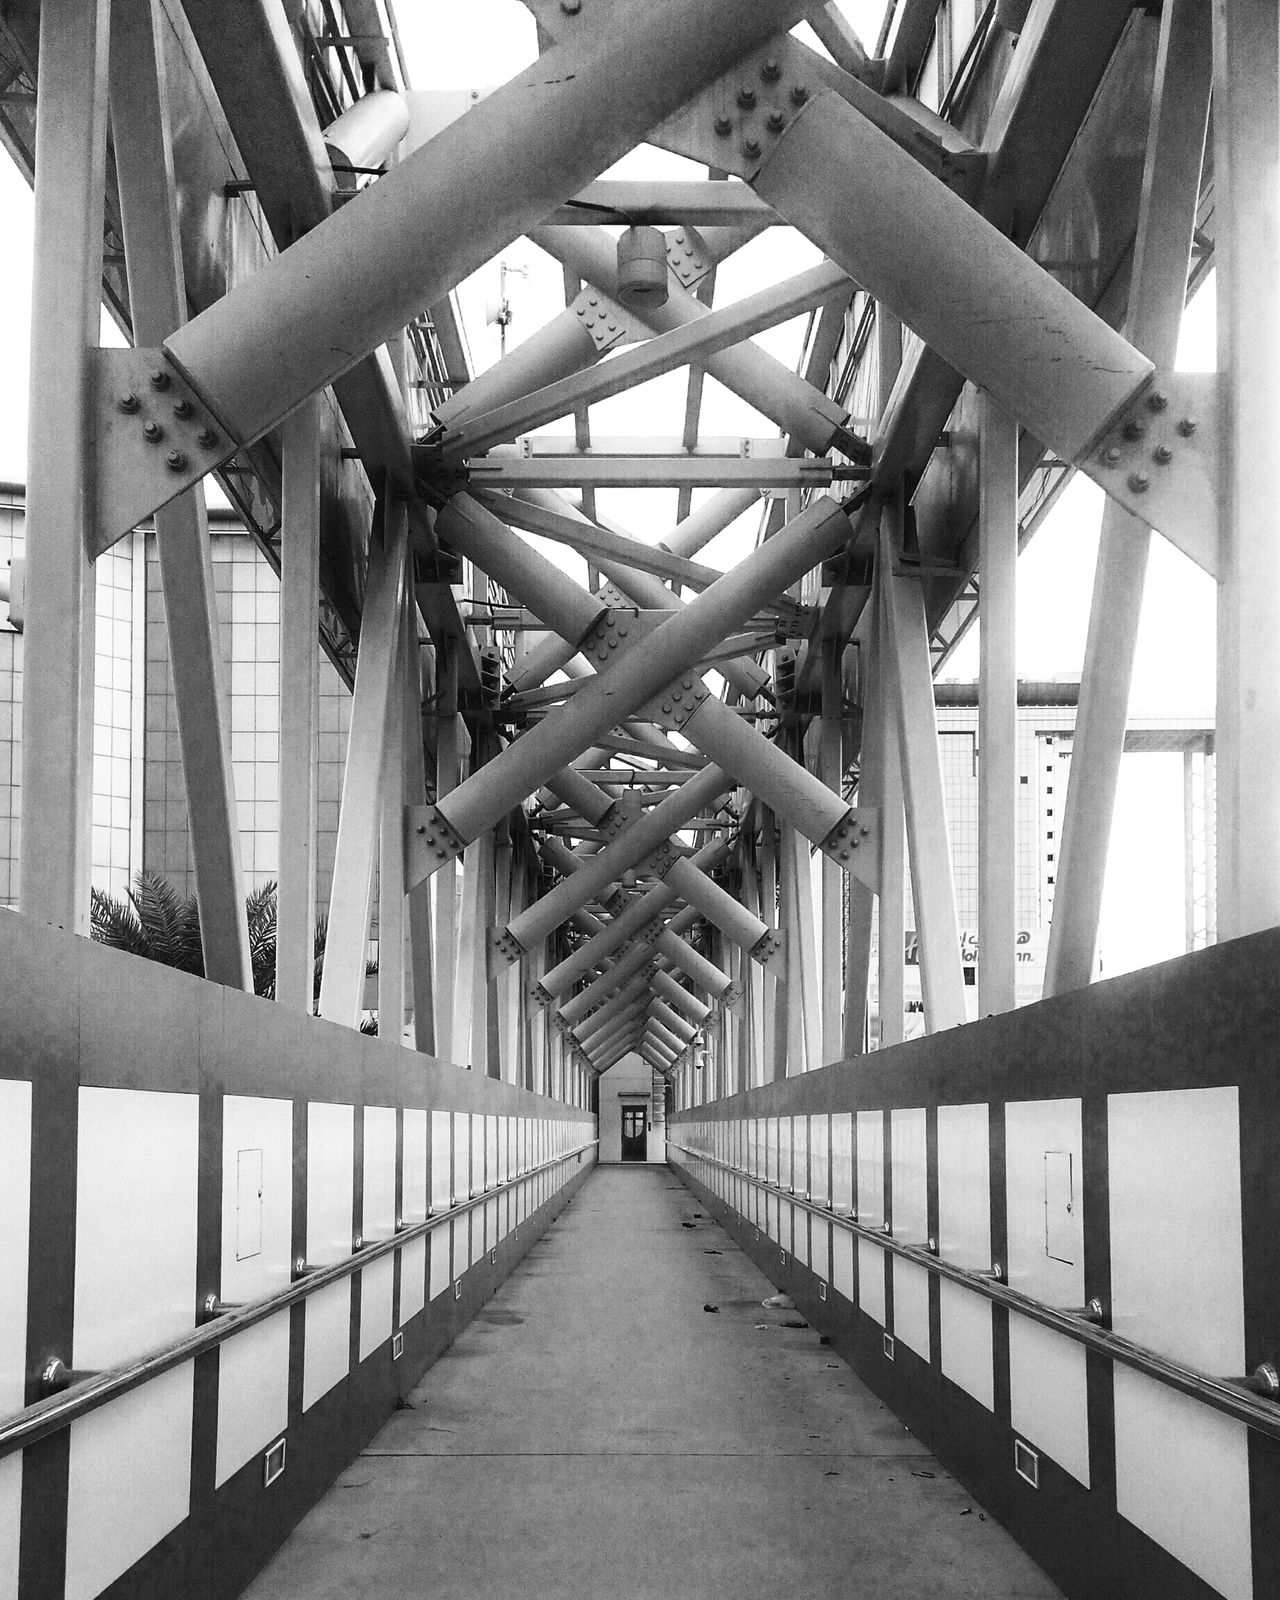 Bridge Bridge - Man Made Structure Built Structure Architecture City Outdoors Cross Structure Metal Street Lines Lines And Shapes